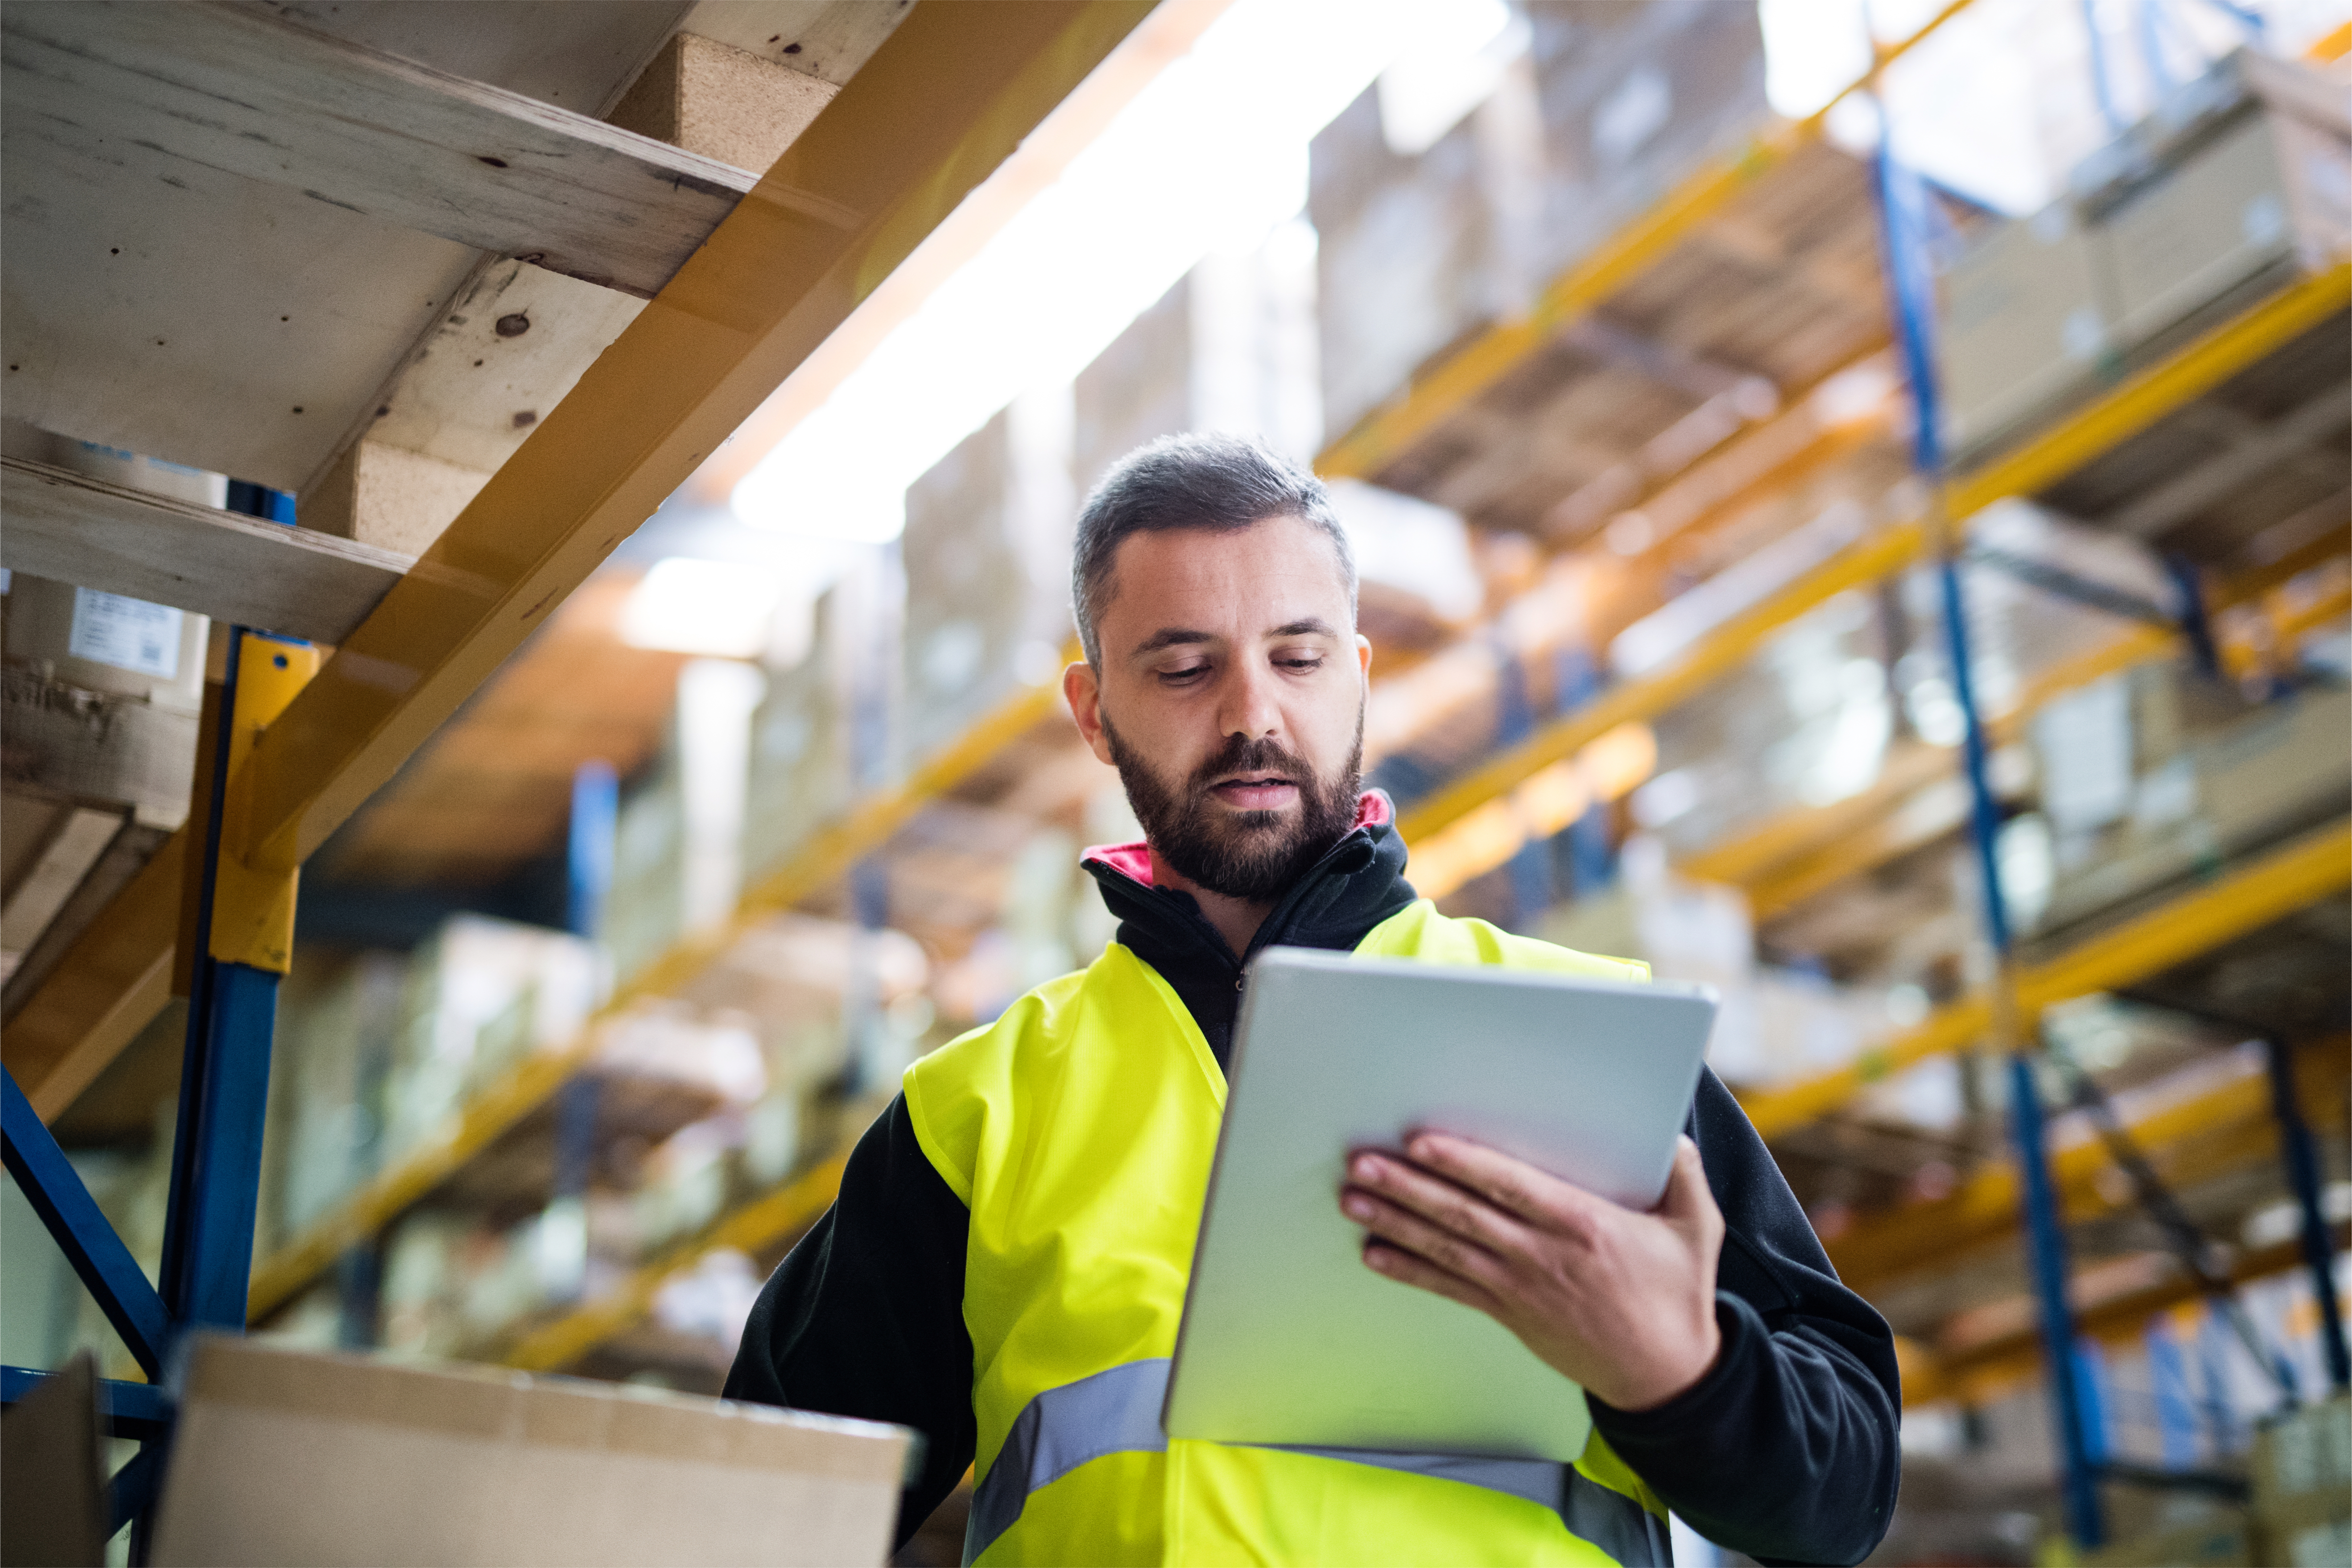 Six Must Have Features for Logistics, Supply Chain Software